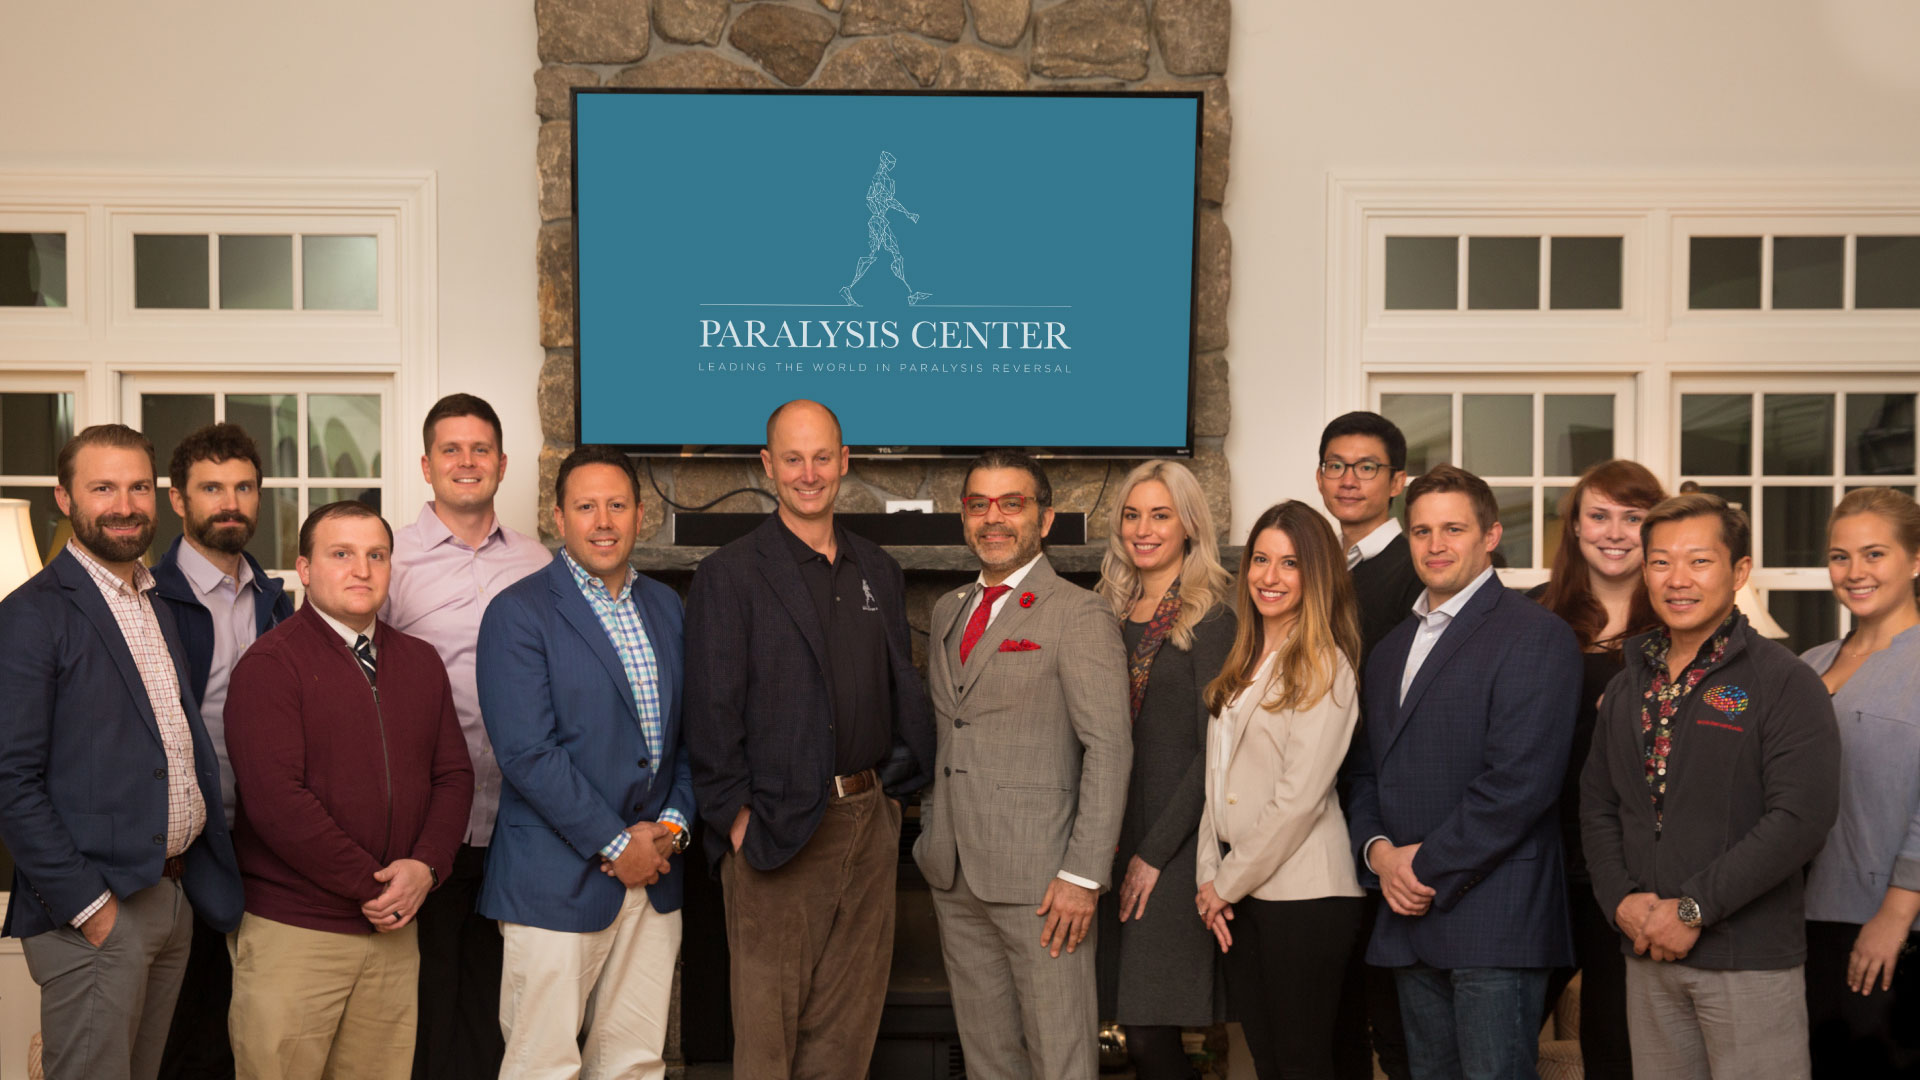 The Paralysis Center team photo. An extremely talented team of surgeons.